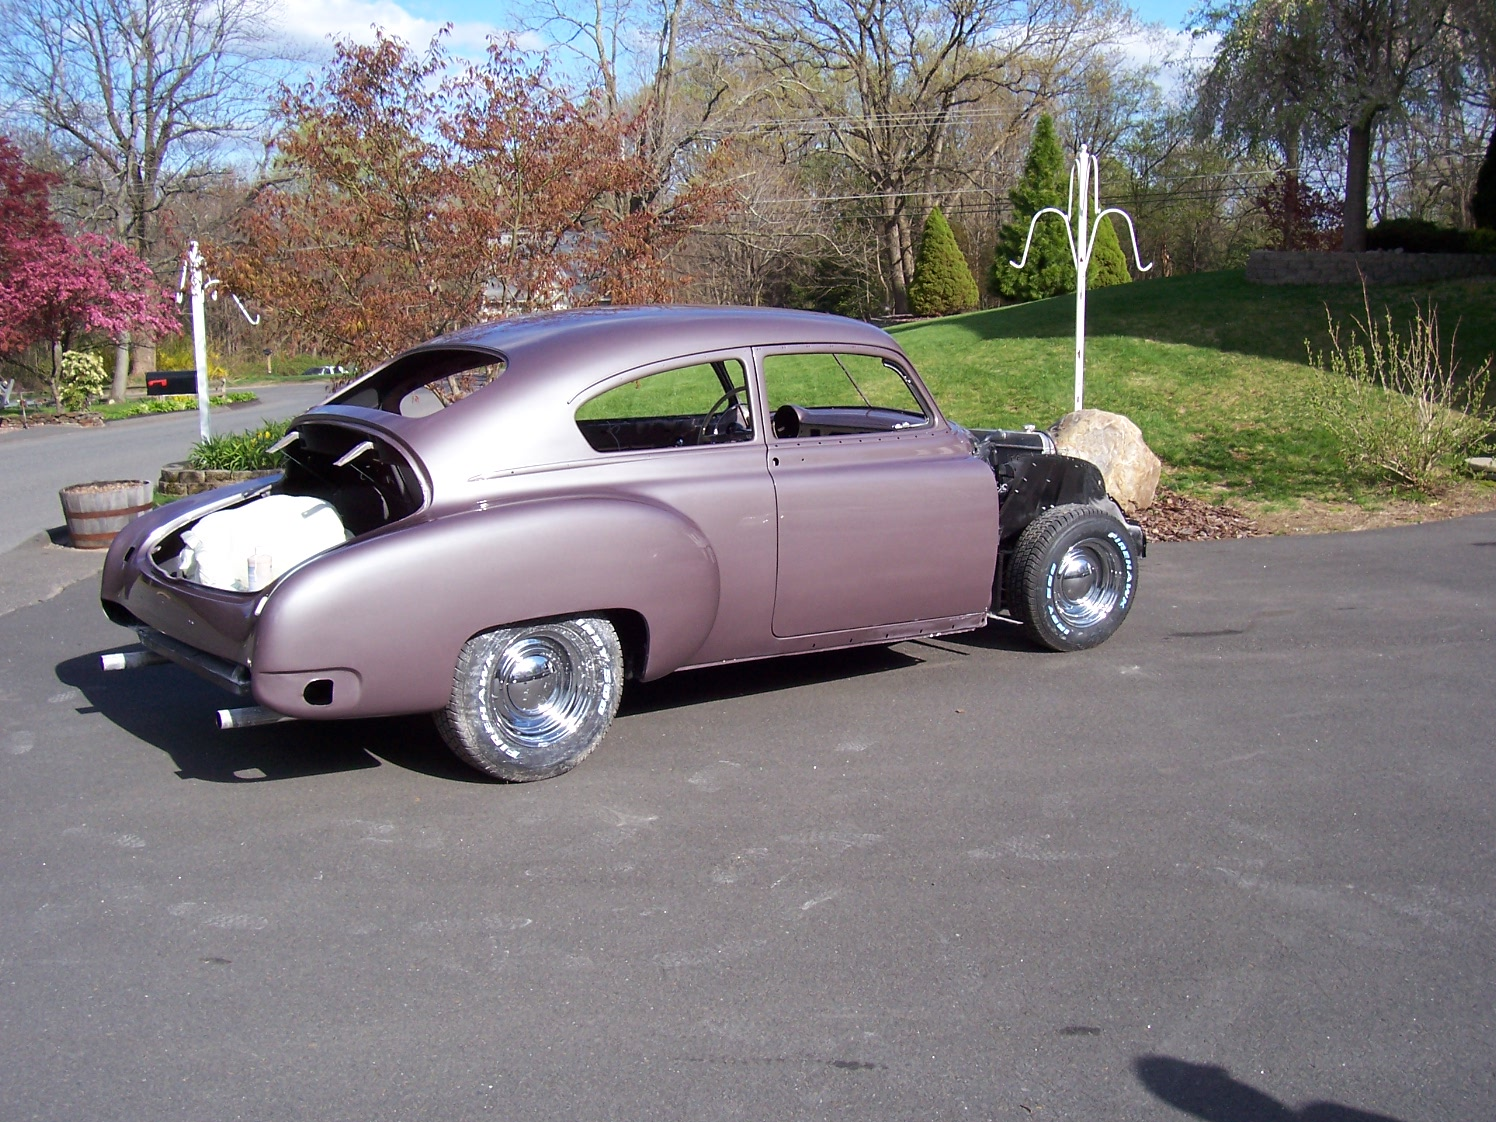 Click image for larger version  Name:2005_021650chevypicnewpaint0007.JPG Views:116 Size:670.7 KB ID:46014